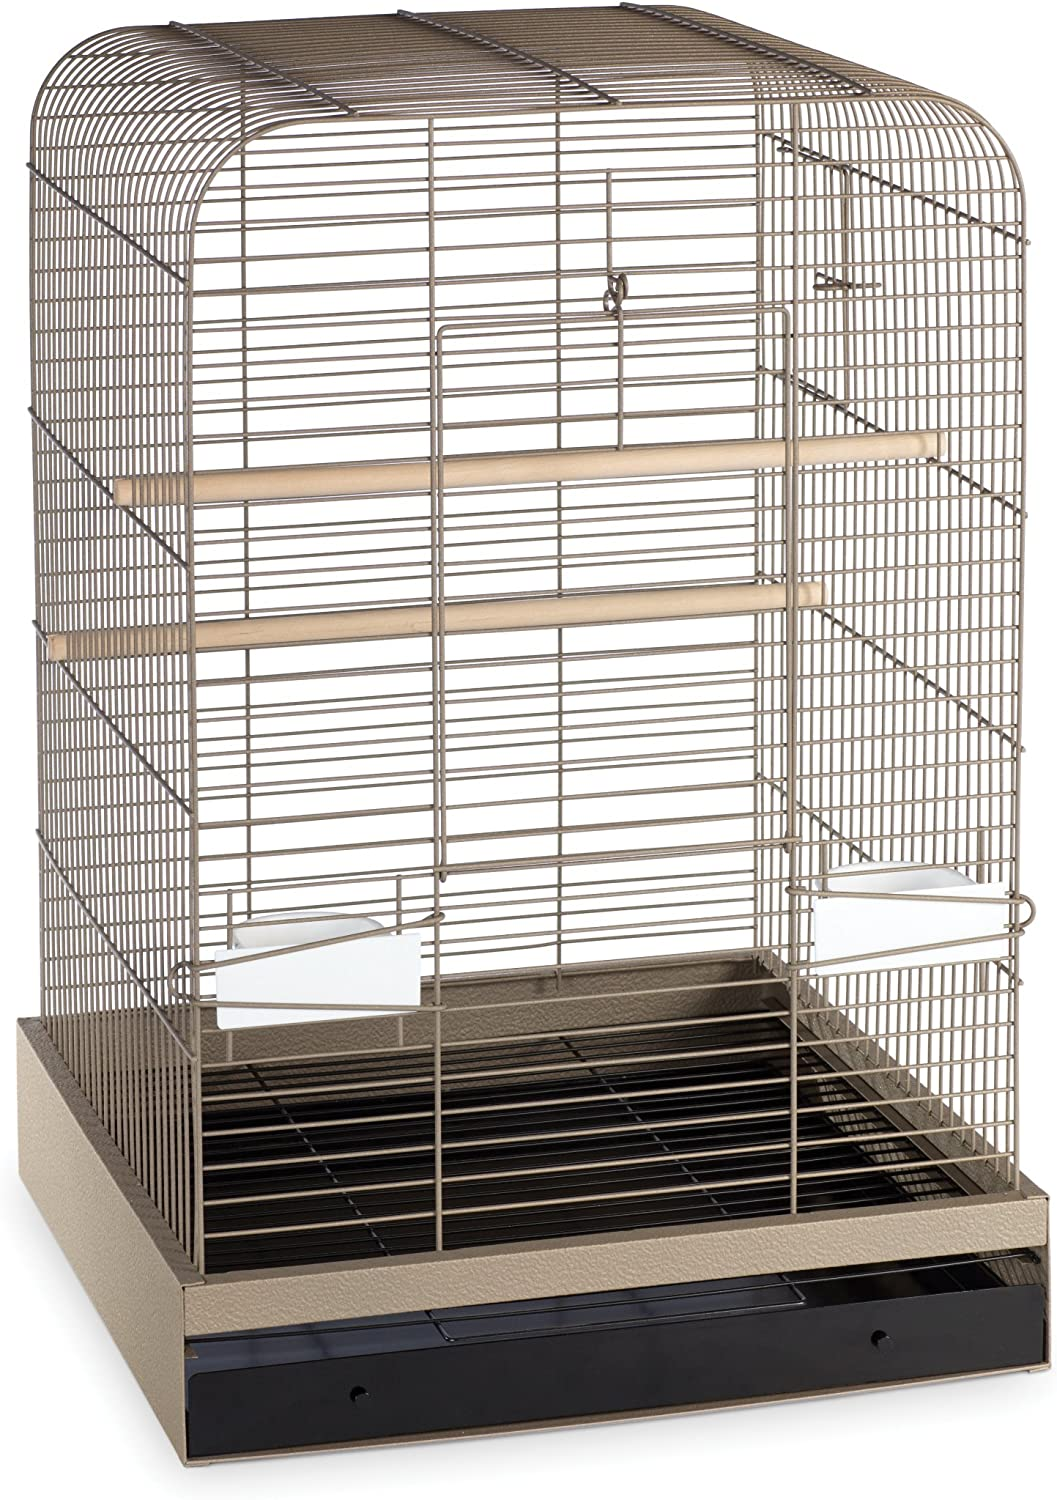 Industry No. 1 Free shipping anywhere in the nation Prevue Hendryx 124PUT Pet Products Madison Putty Cage 5 Bird 8